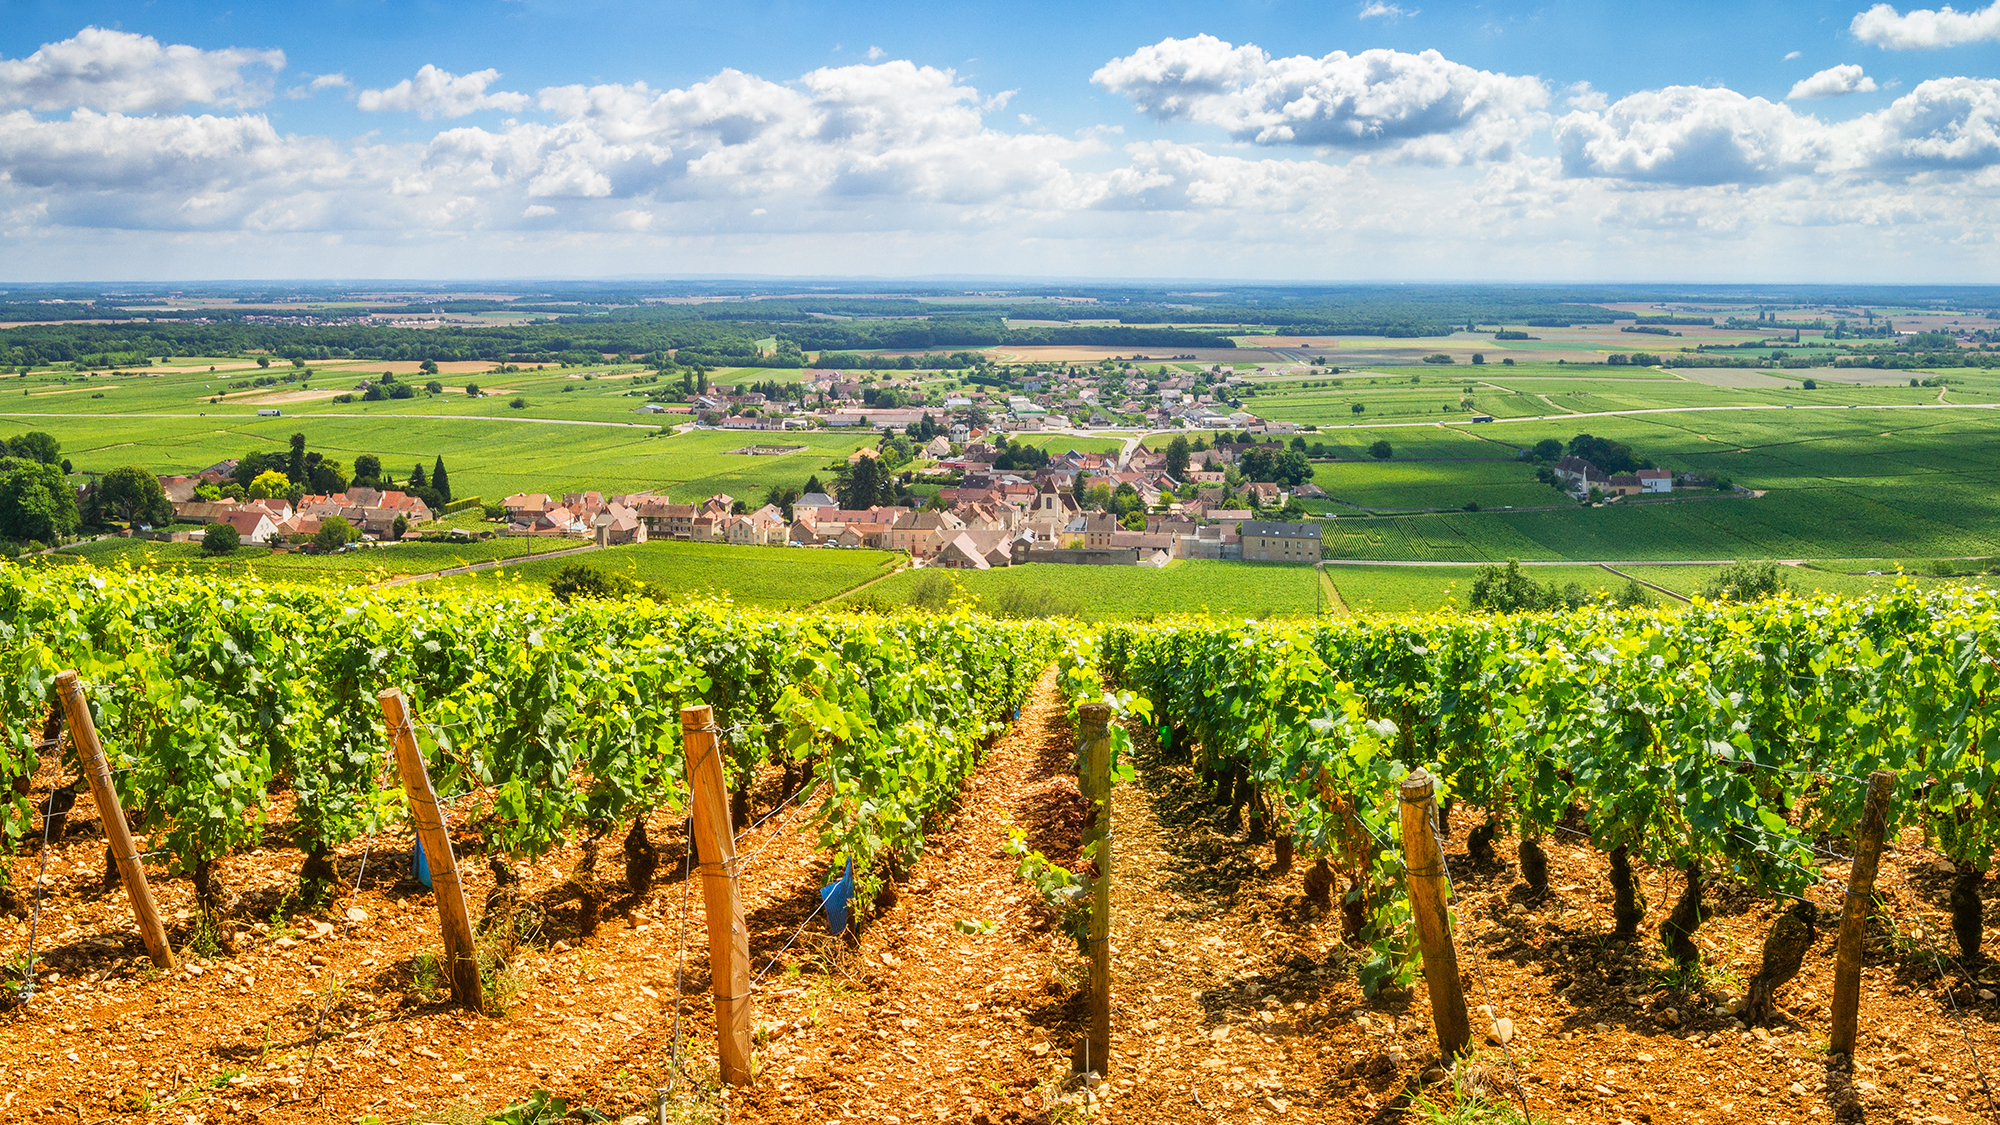 Vineyards with stretch of French countryside below under blue skies